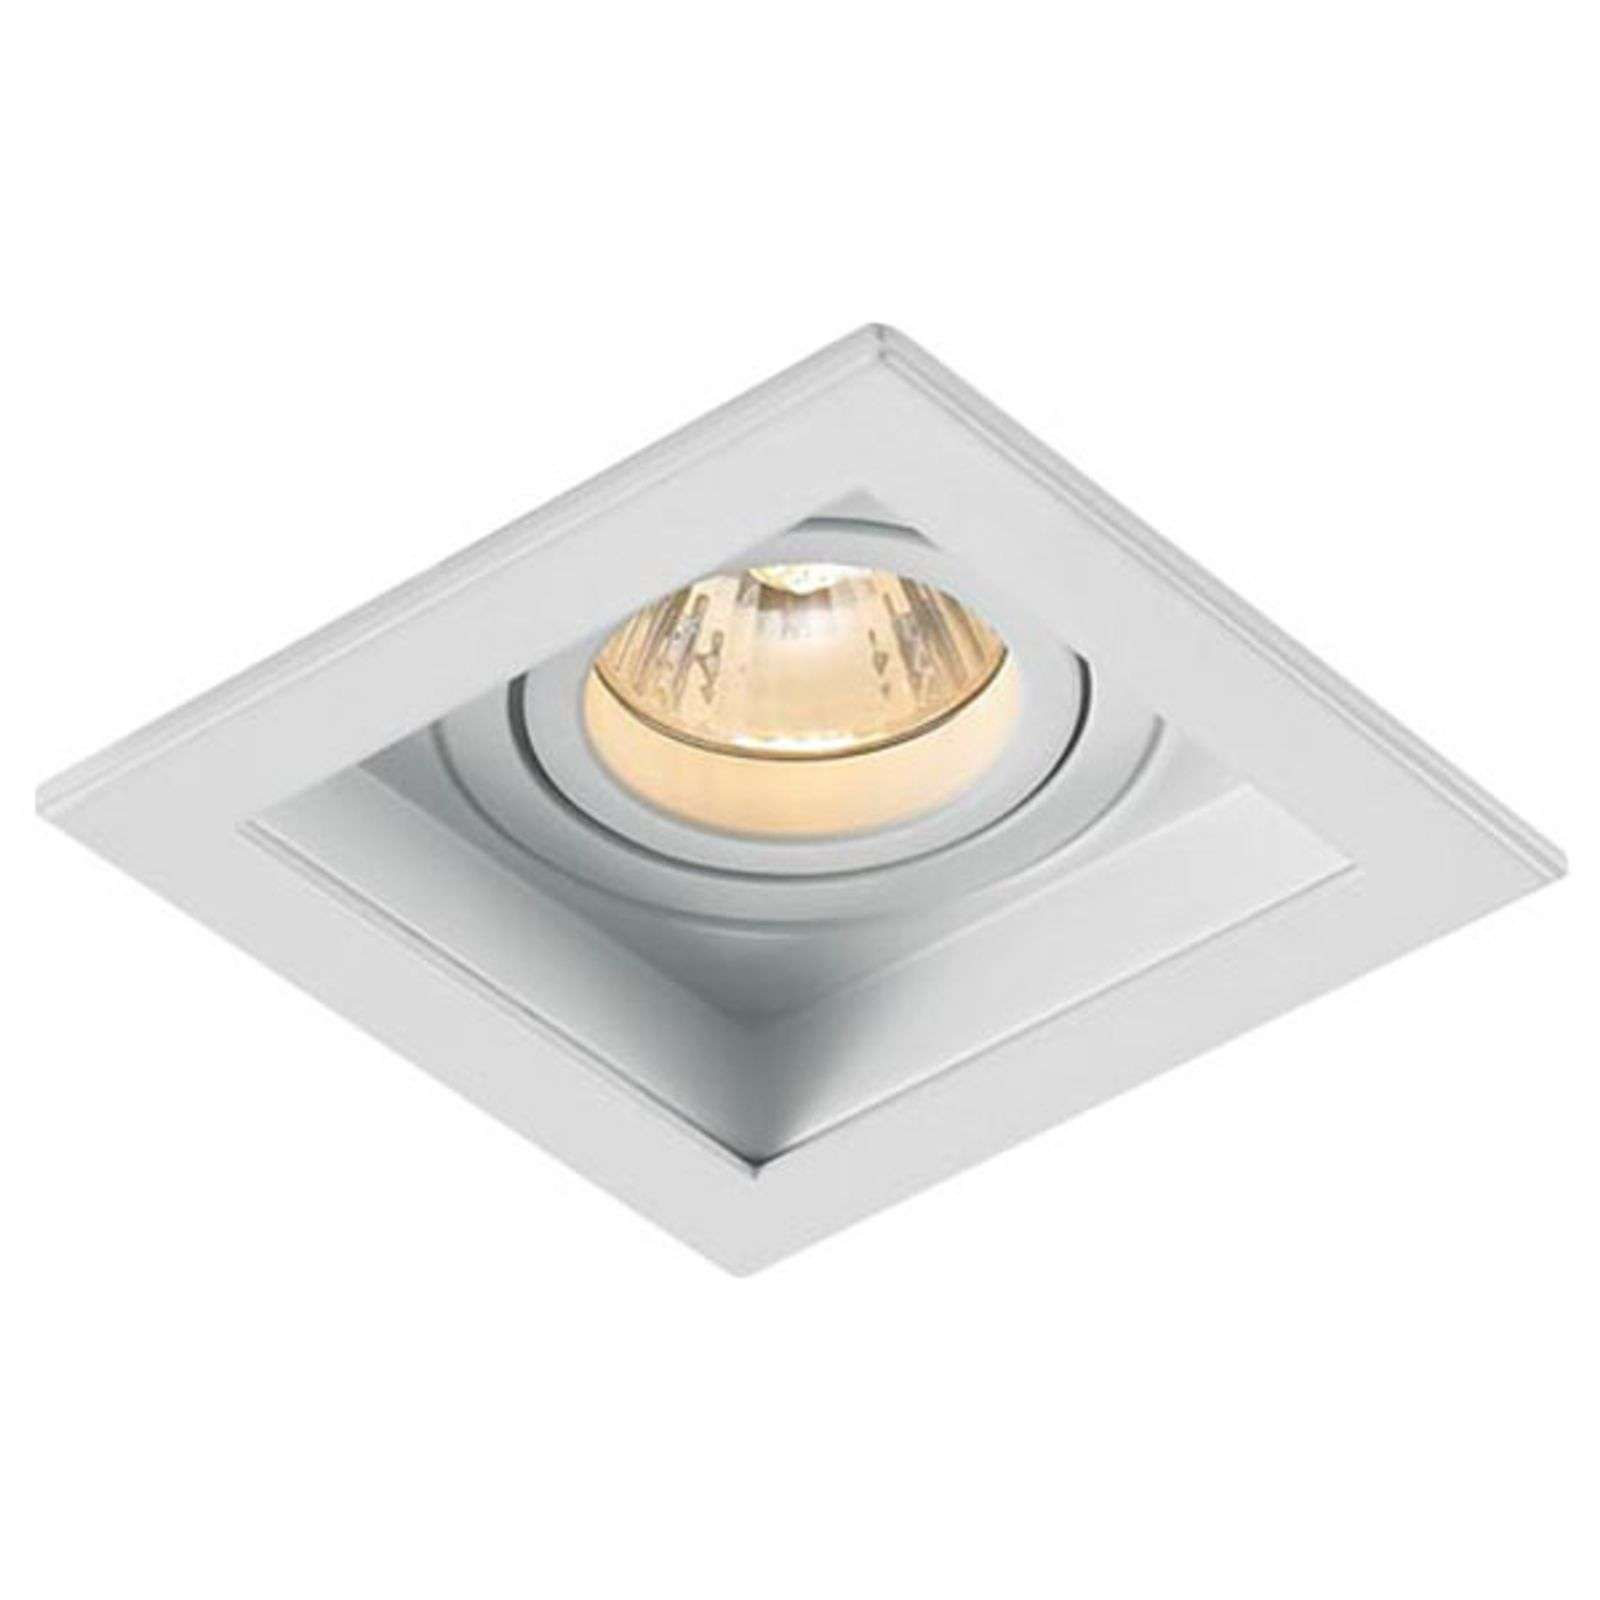 Moderno downlight Sulima bianco-bianco